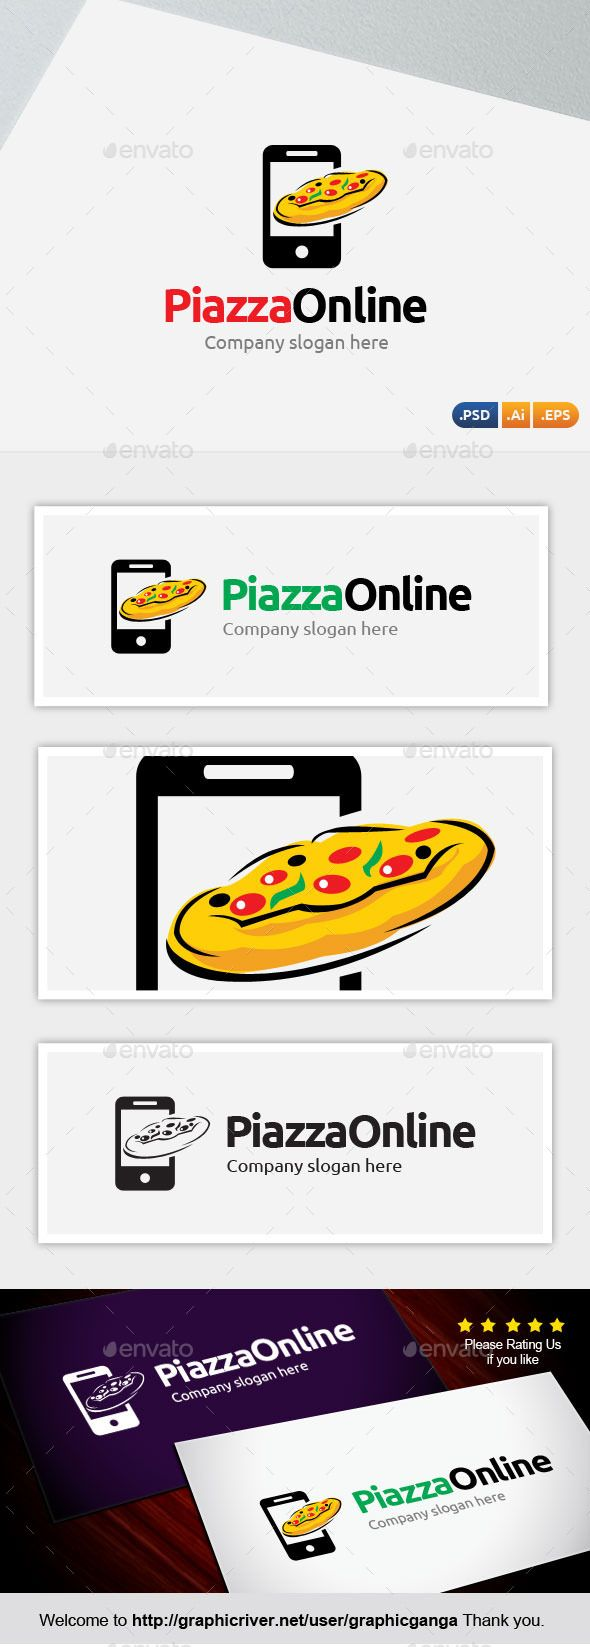 Invert color jpg online - Buy Piazza Online By Graphicganga On Graphicriver File Information Color Cmyk Print Black Invert Color Version Psd Ai Outline Ver Cs Edi